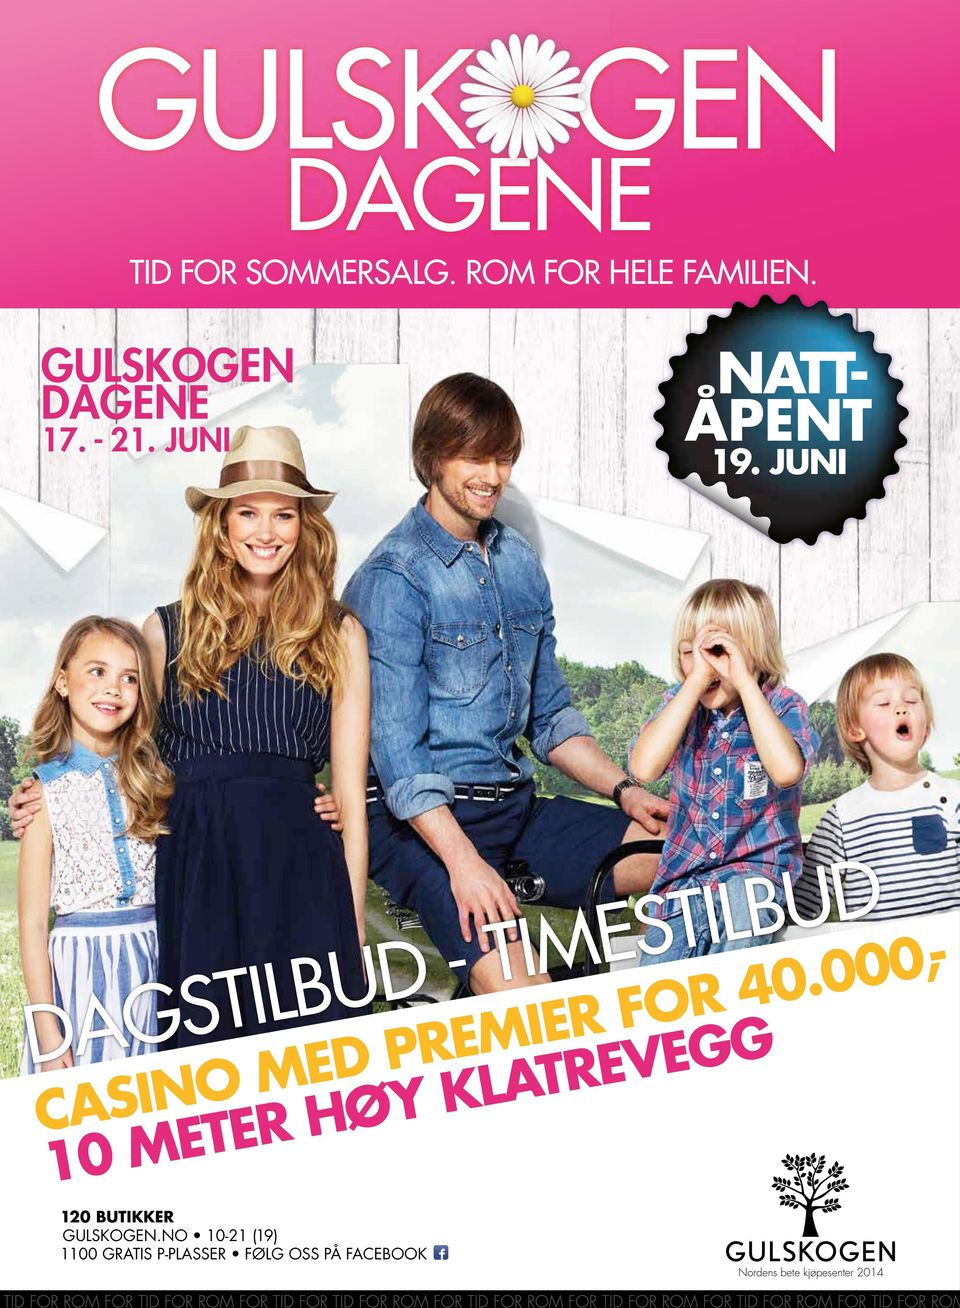 JUNI DAGS - TIMES CASINO MED PREMIER FOR 40.